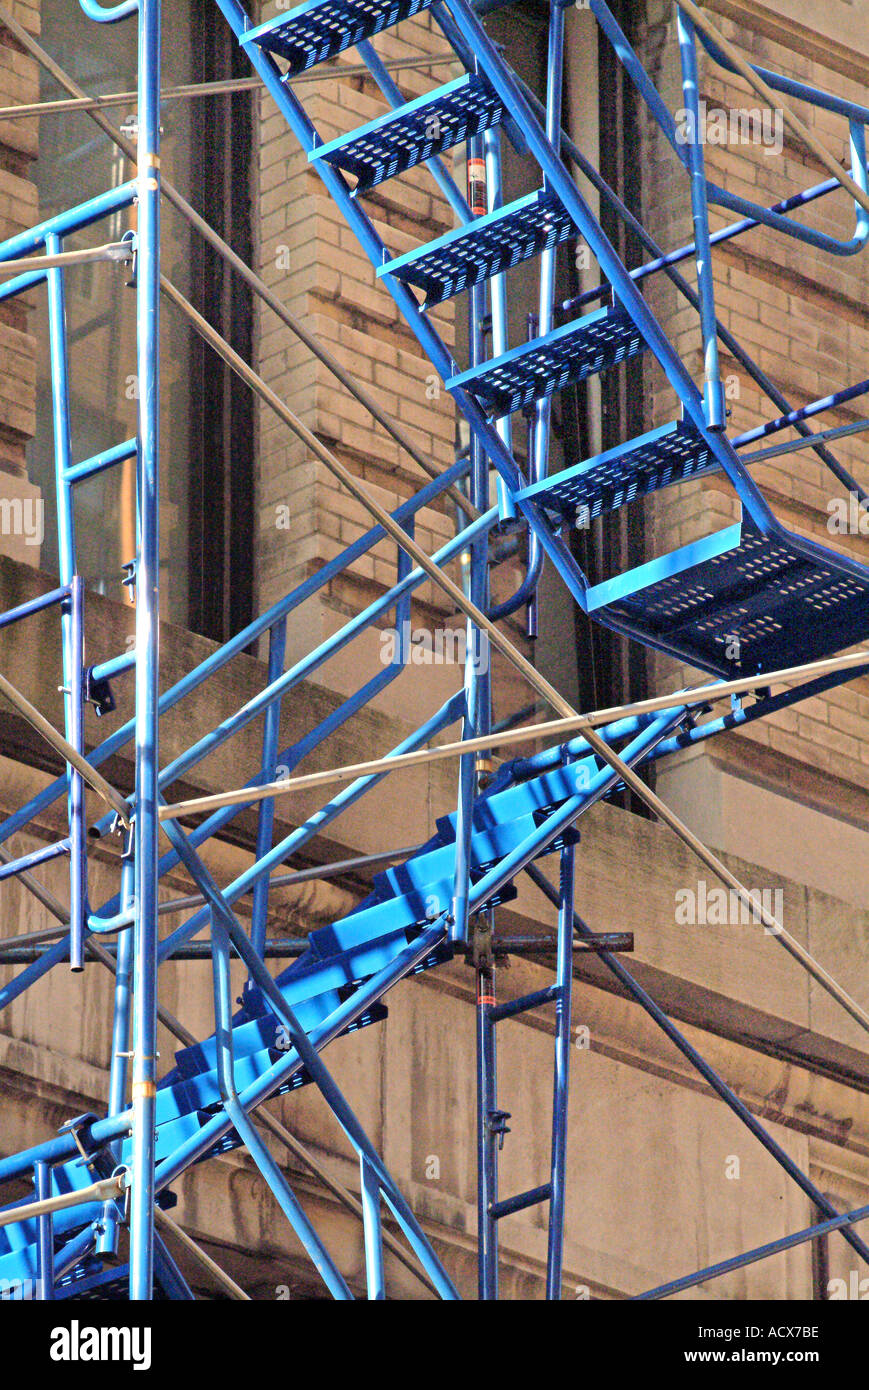 A Fire Escape Stairs And Scaffolding On Exterior Of Apartment Building    Stock Image